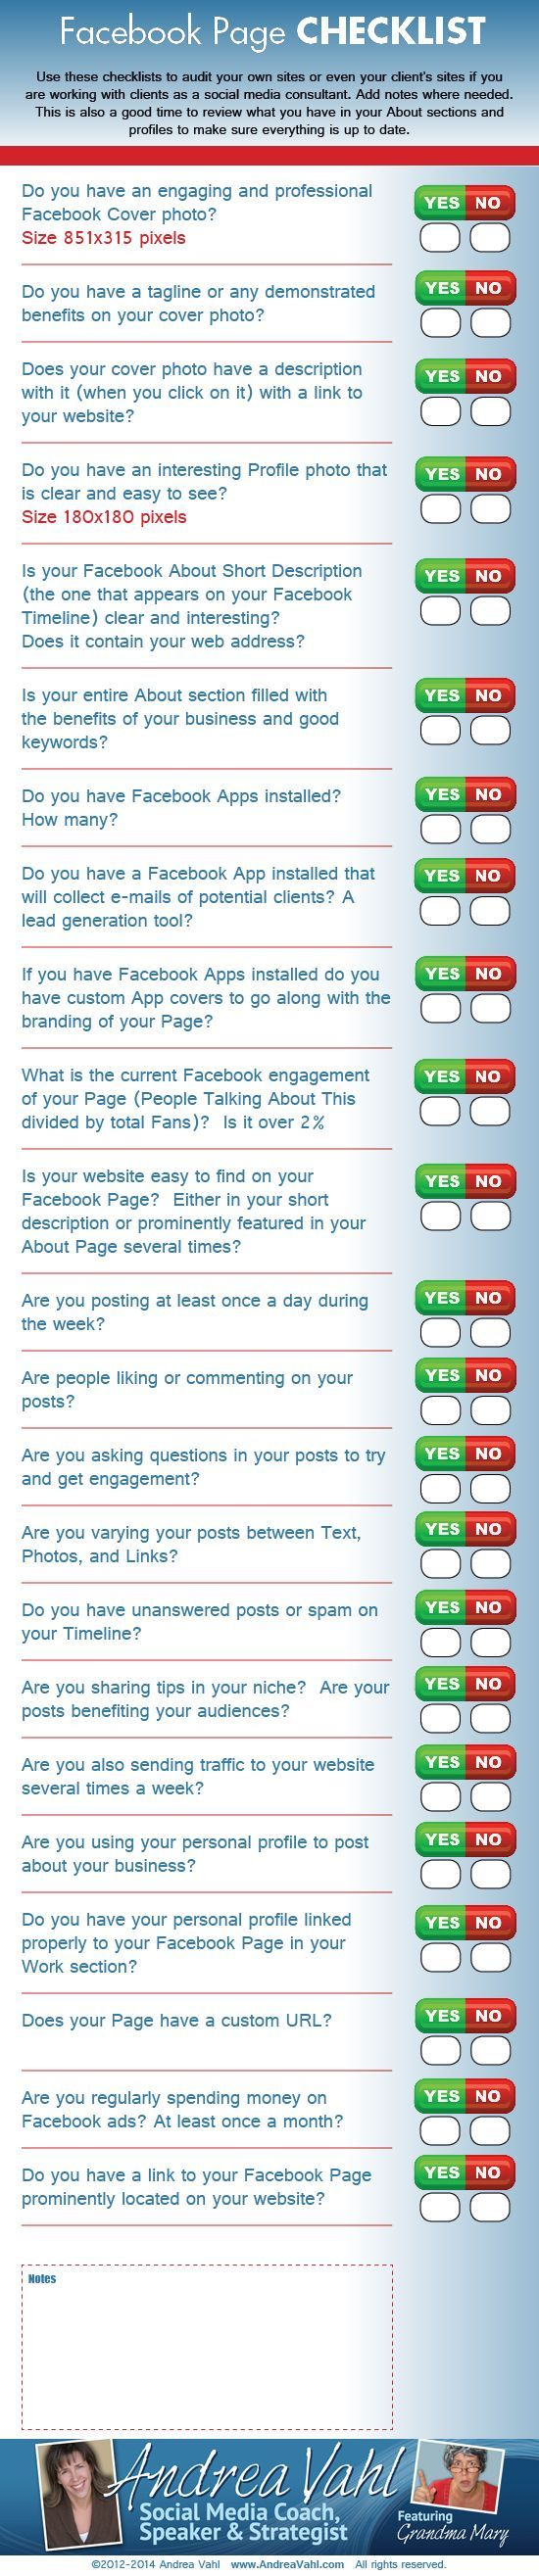 http://www.incometriggerconsulting.com Facebook Page Checklist. This is a great health check for your FB presence. Any questions? Go to my website to book an obligation free call with me.